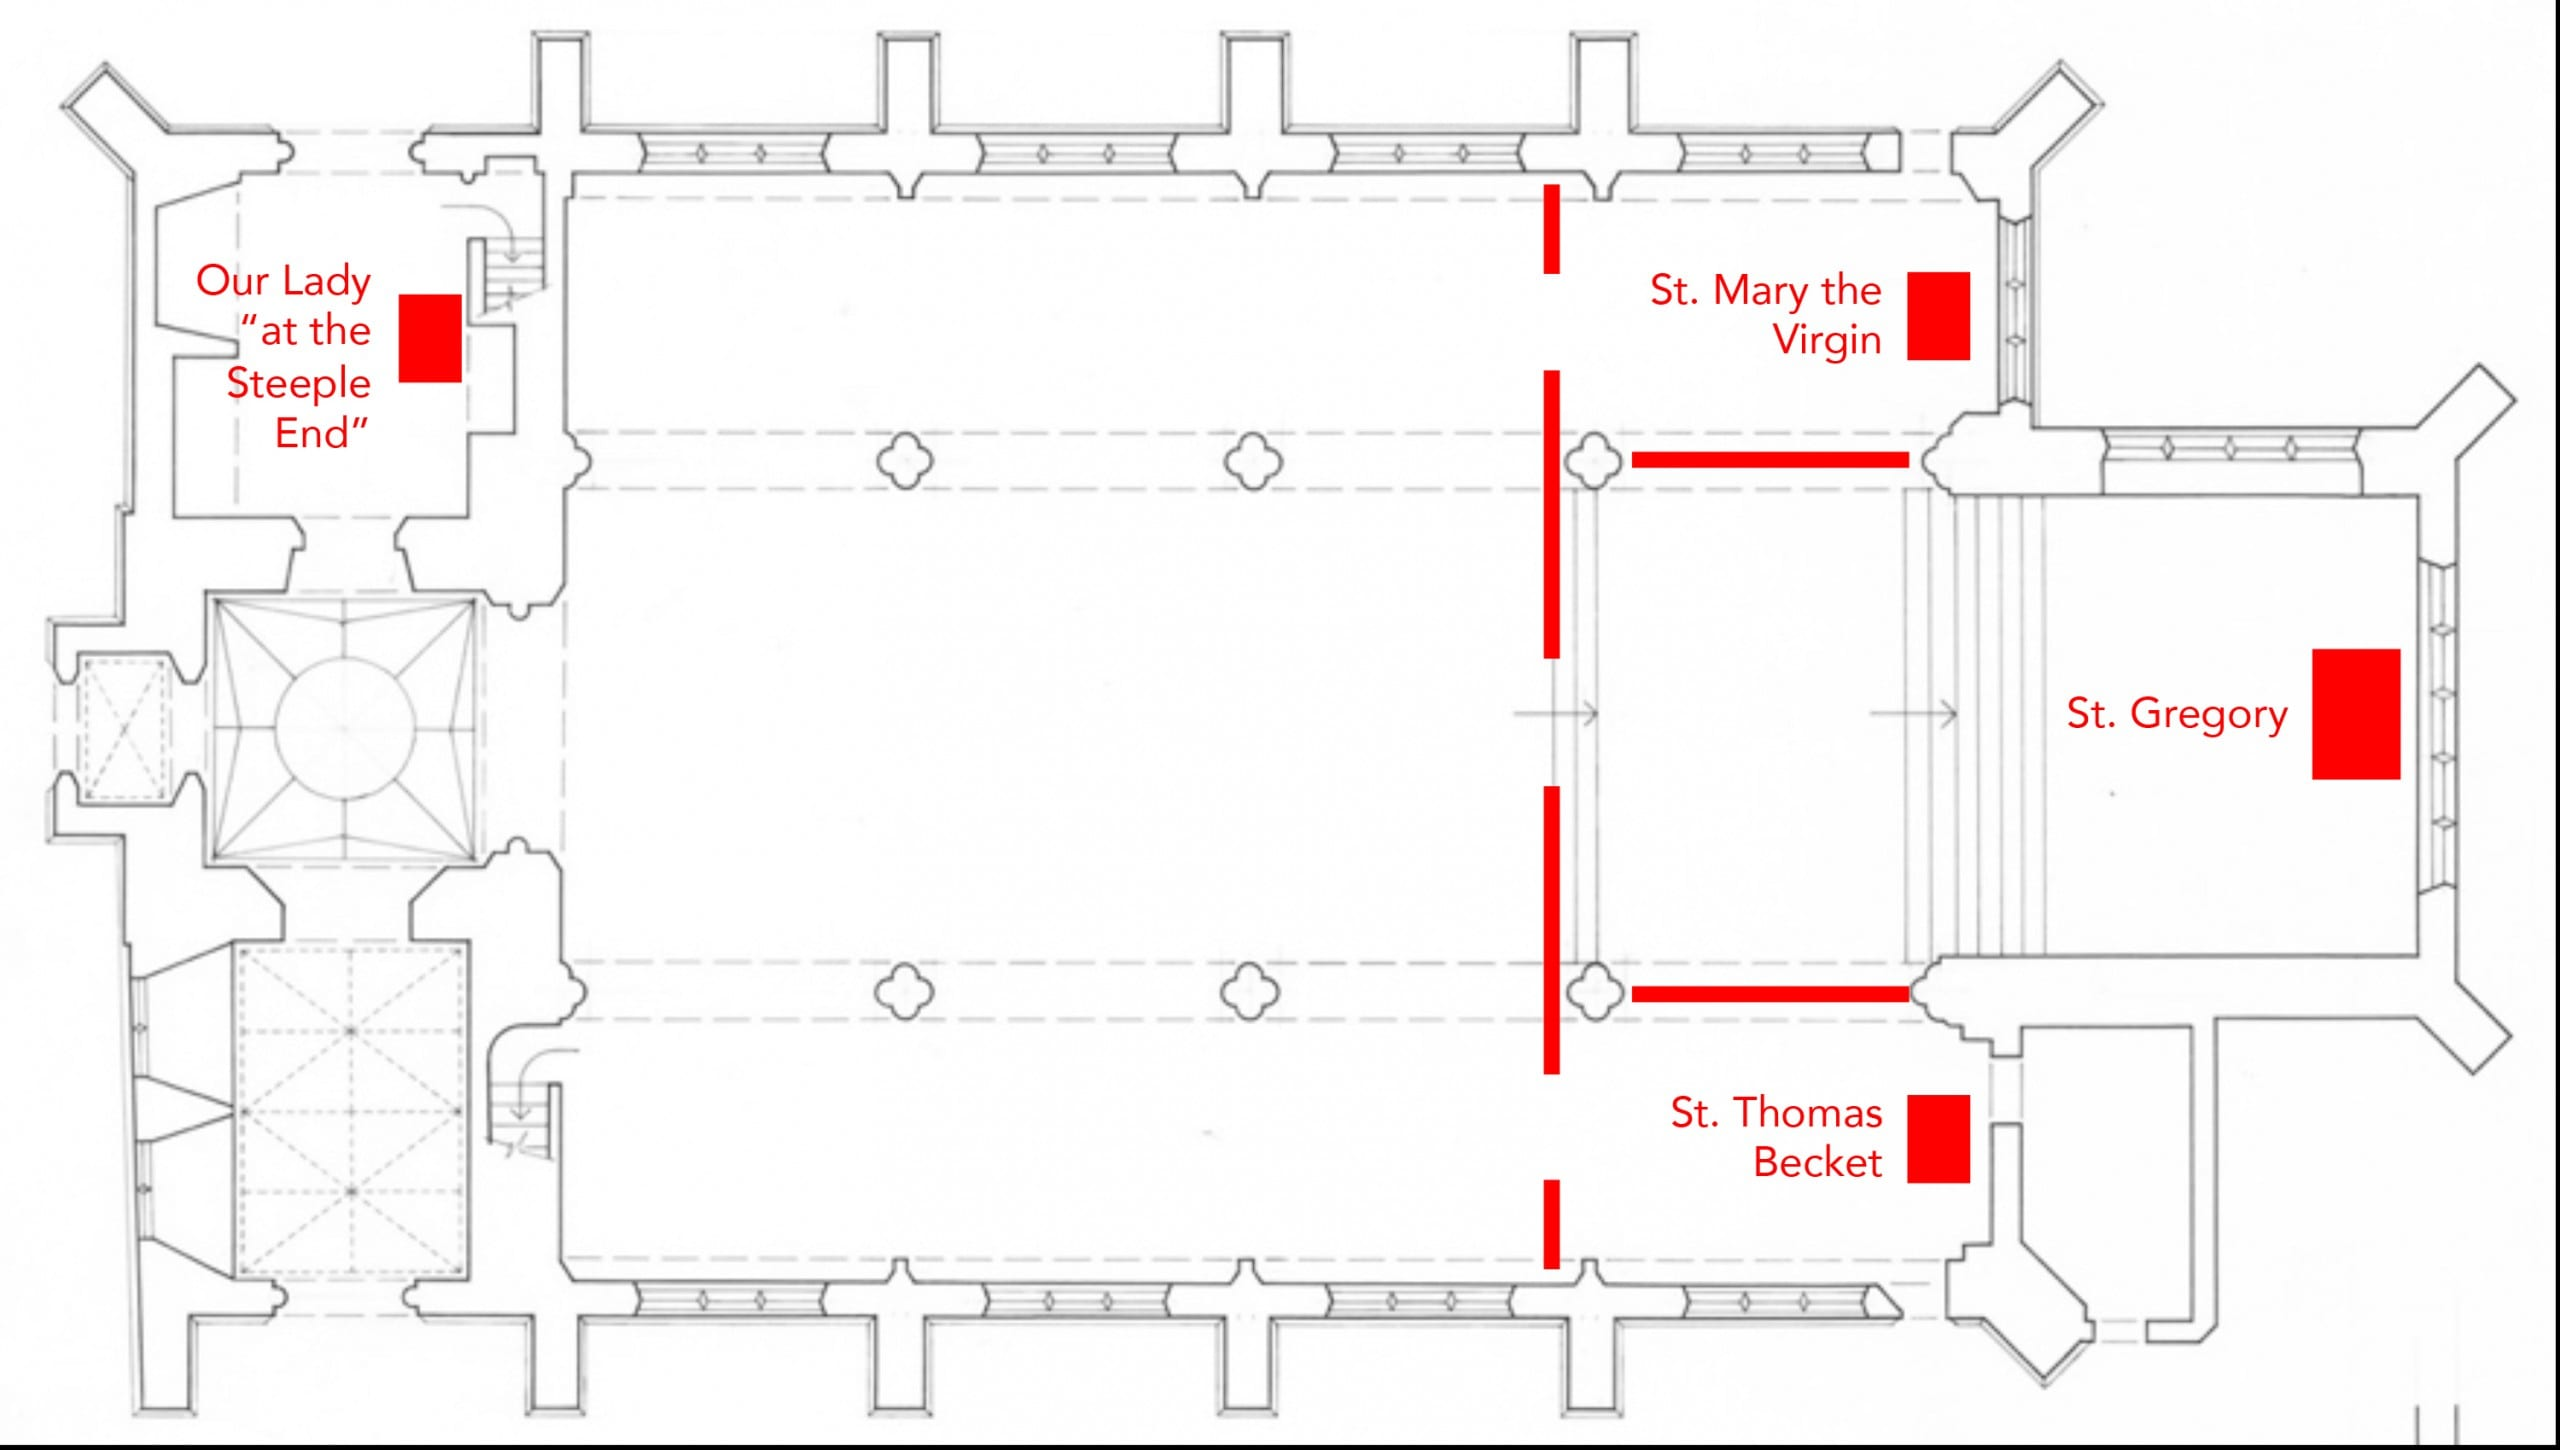 Fig. 4: Floor plan illustrating the location of altars in St. Gregory Pottergate, Norwich, England, before the Reformation